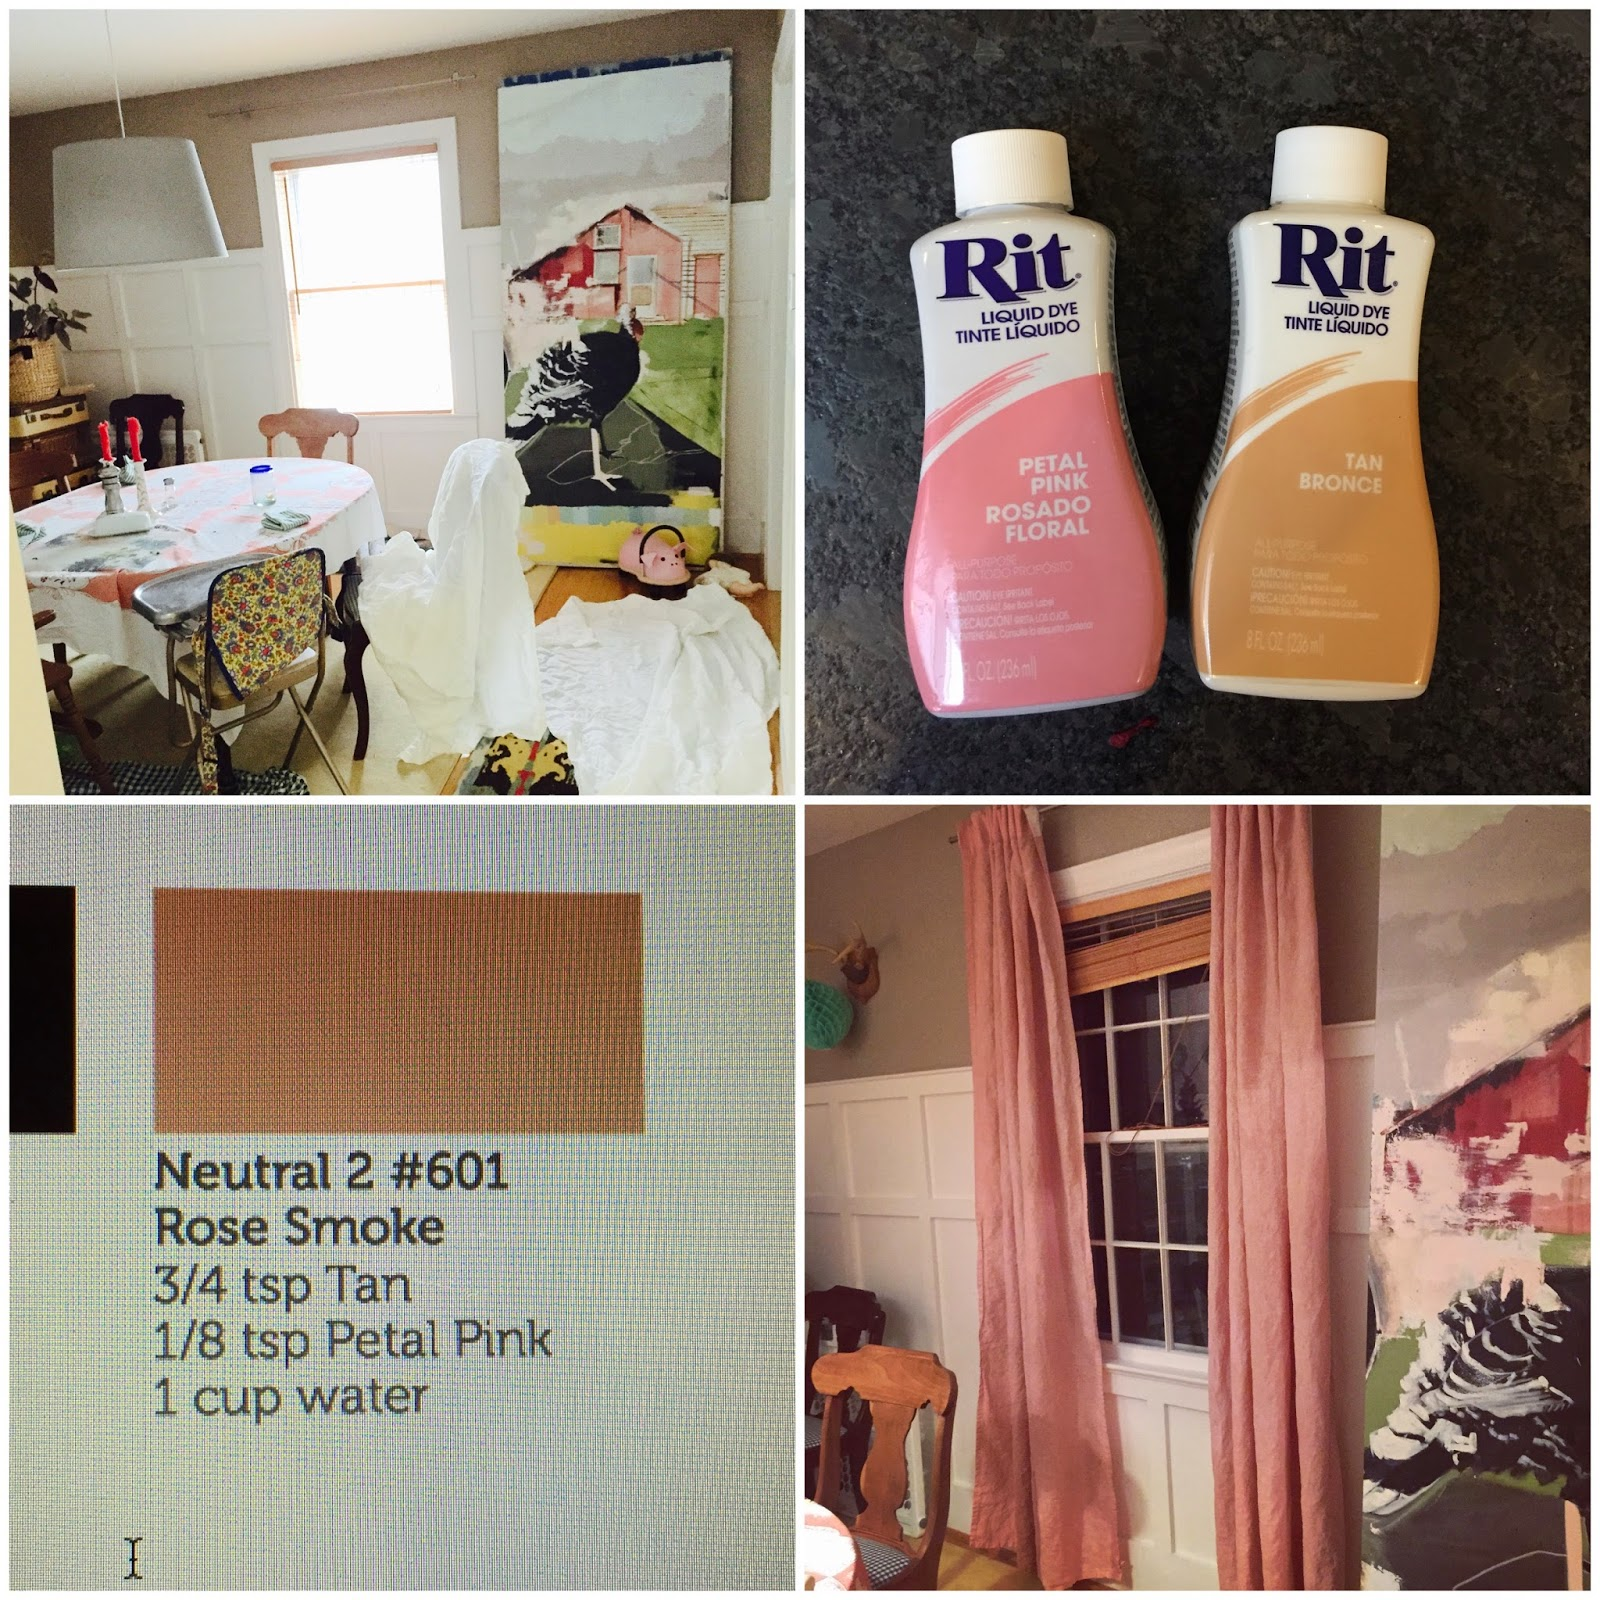 So After Consulting The Rit Dye Color Chart Online Here I Opted For Rose Smoke Which Combines Petal Pink And Tan Gotta Say M Loving Results